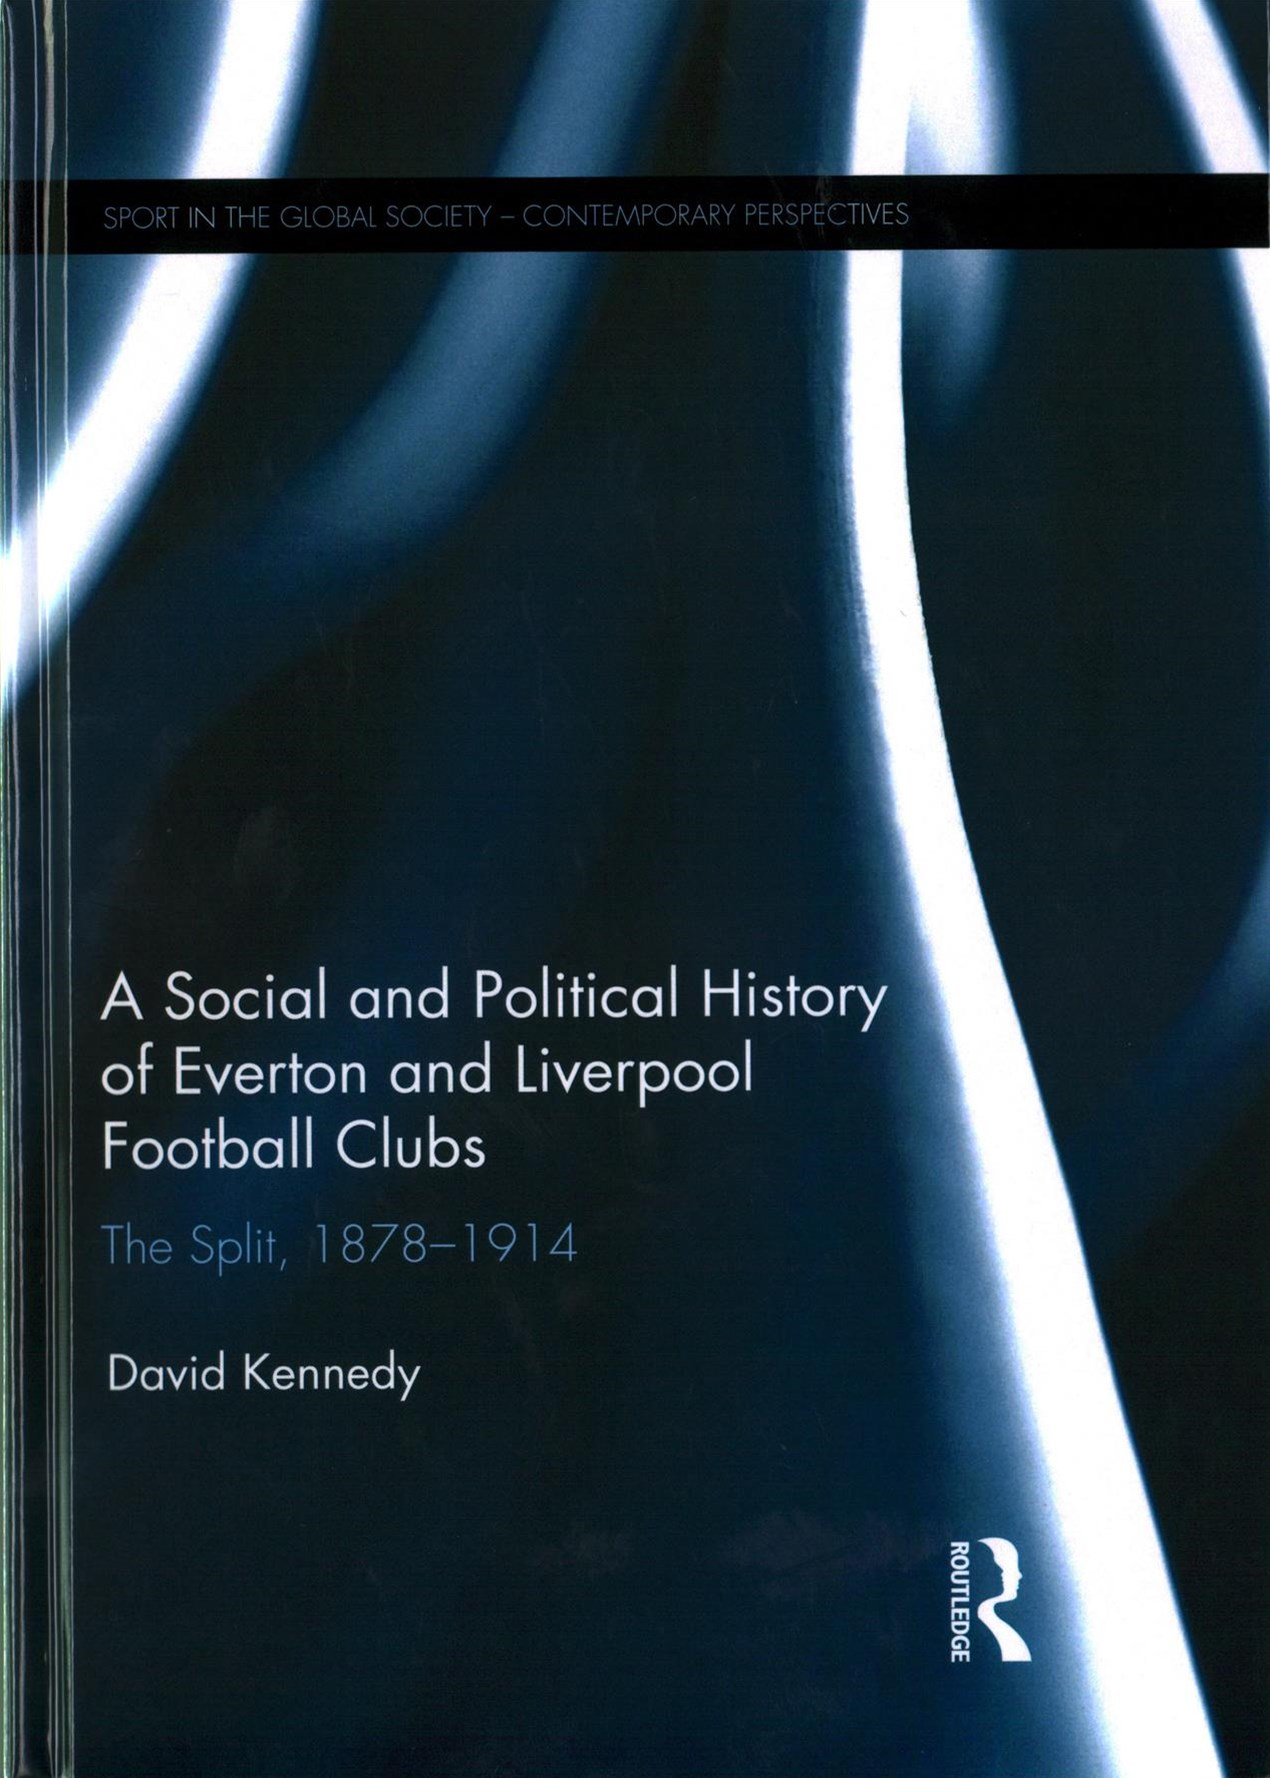 Social and Political History of Everton and Liverpool Football Clubs